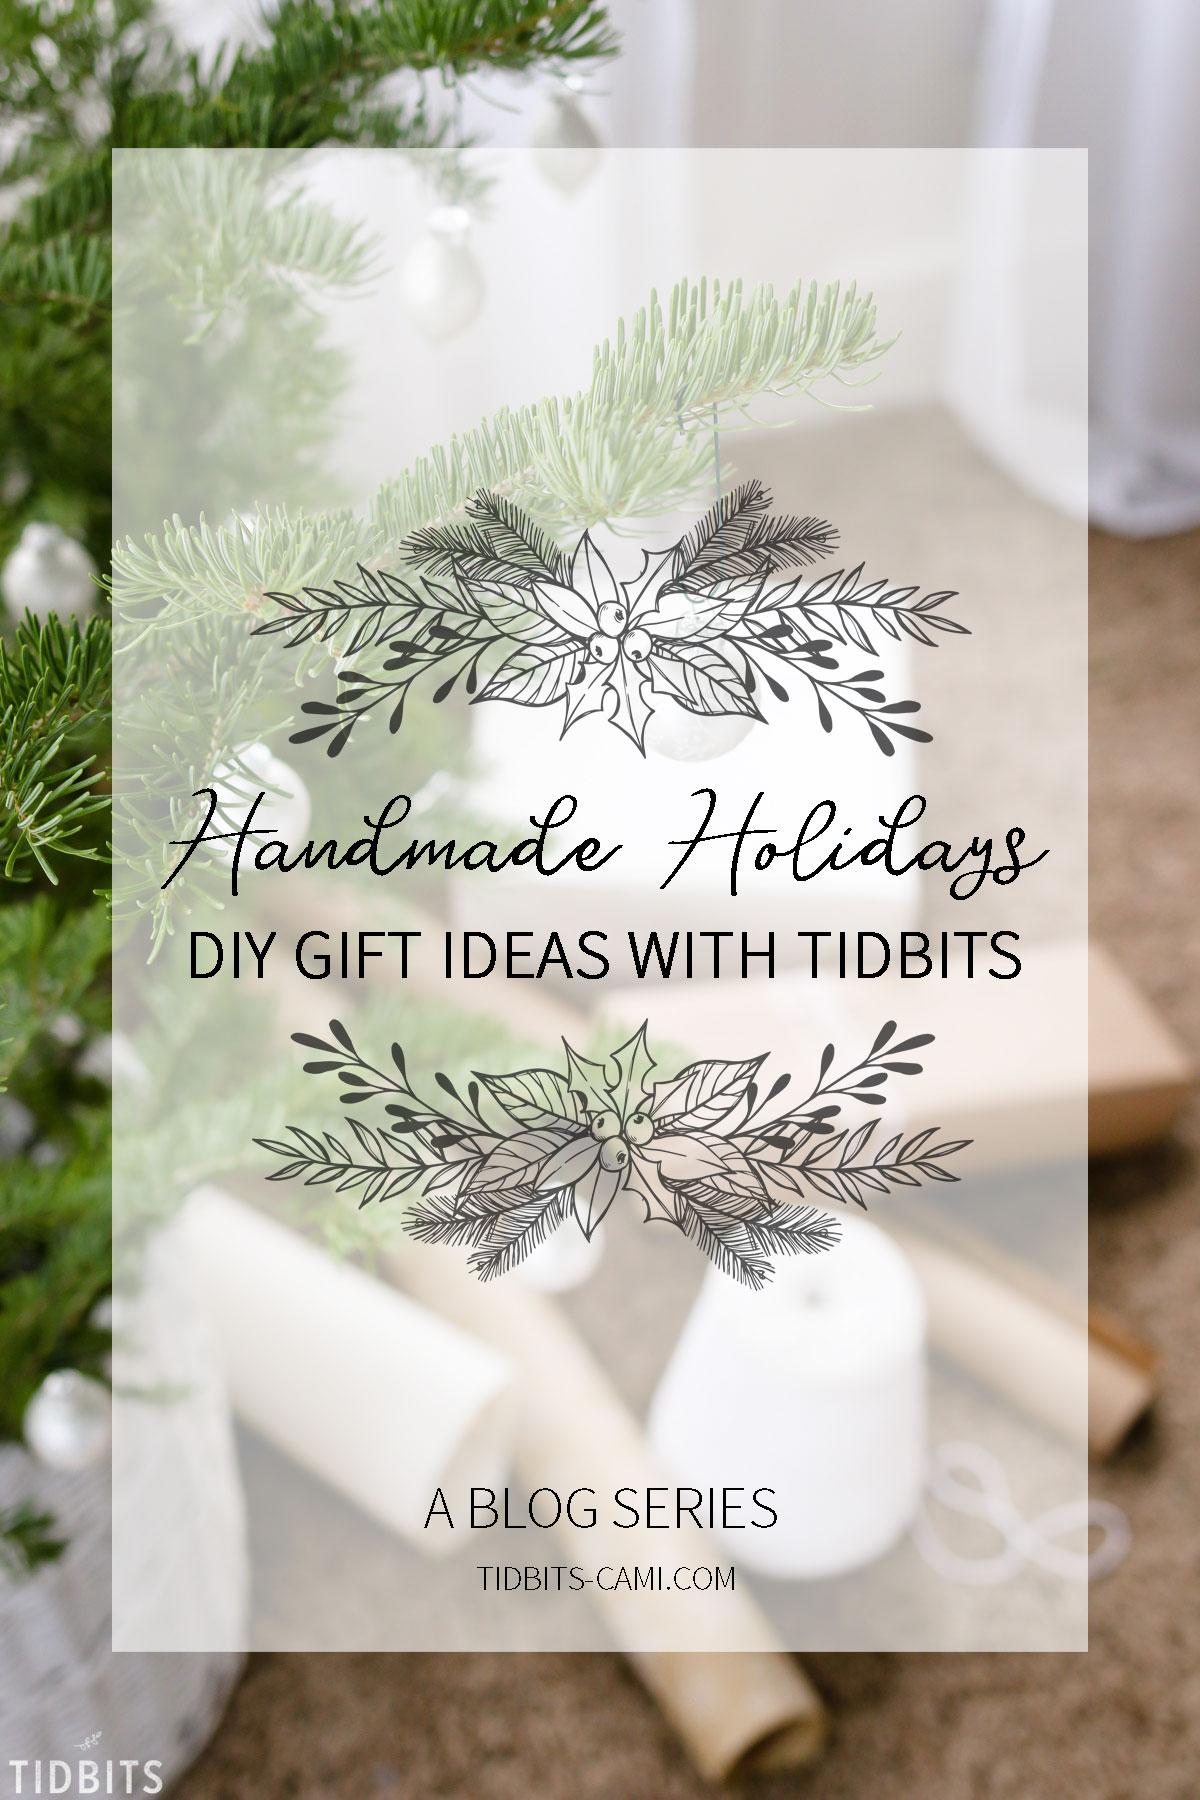 Handmade Holidays DIY gift ideas with TIDBITS